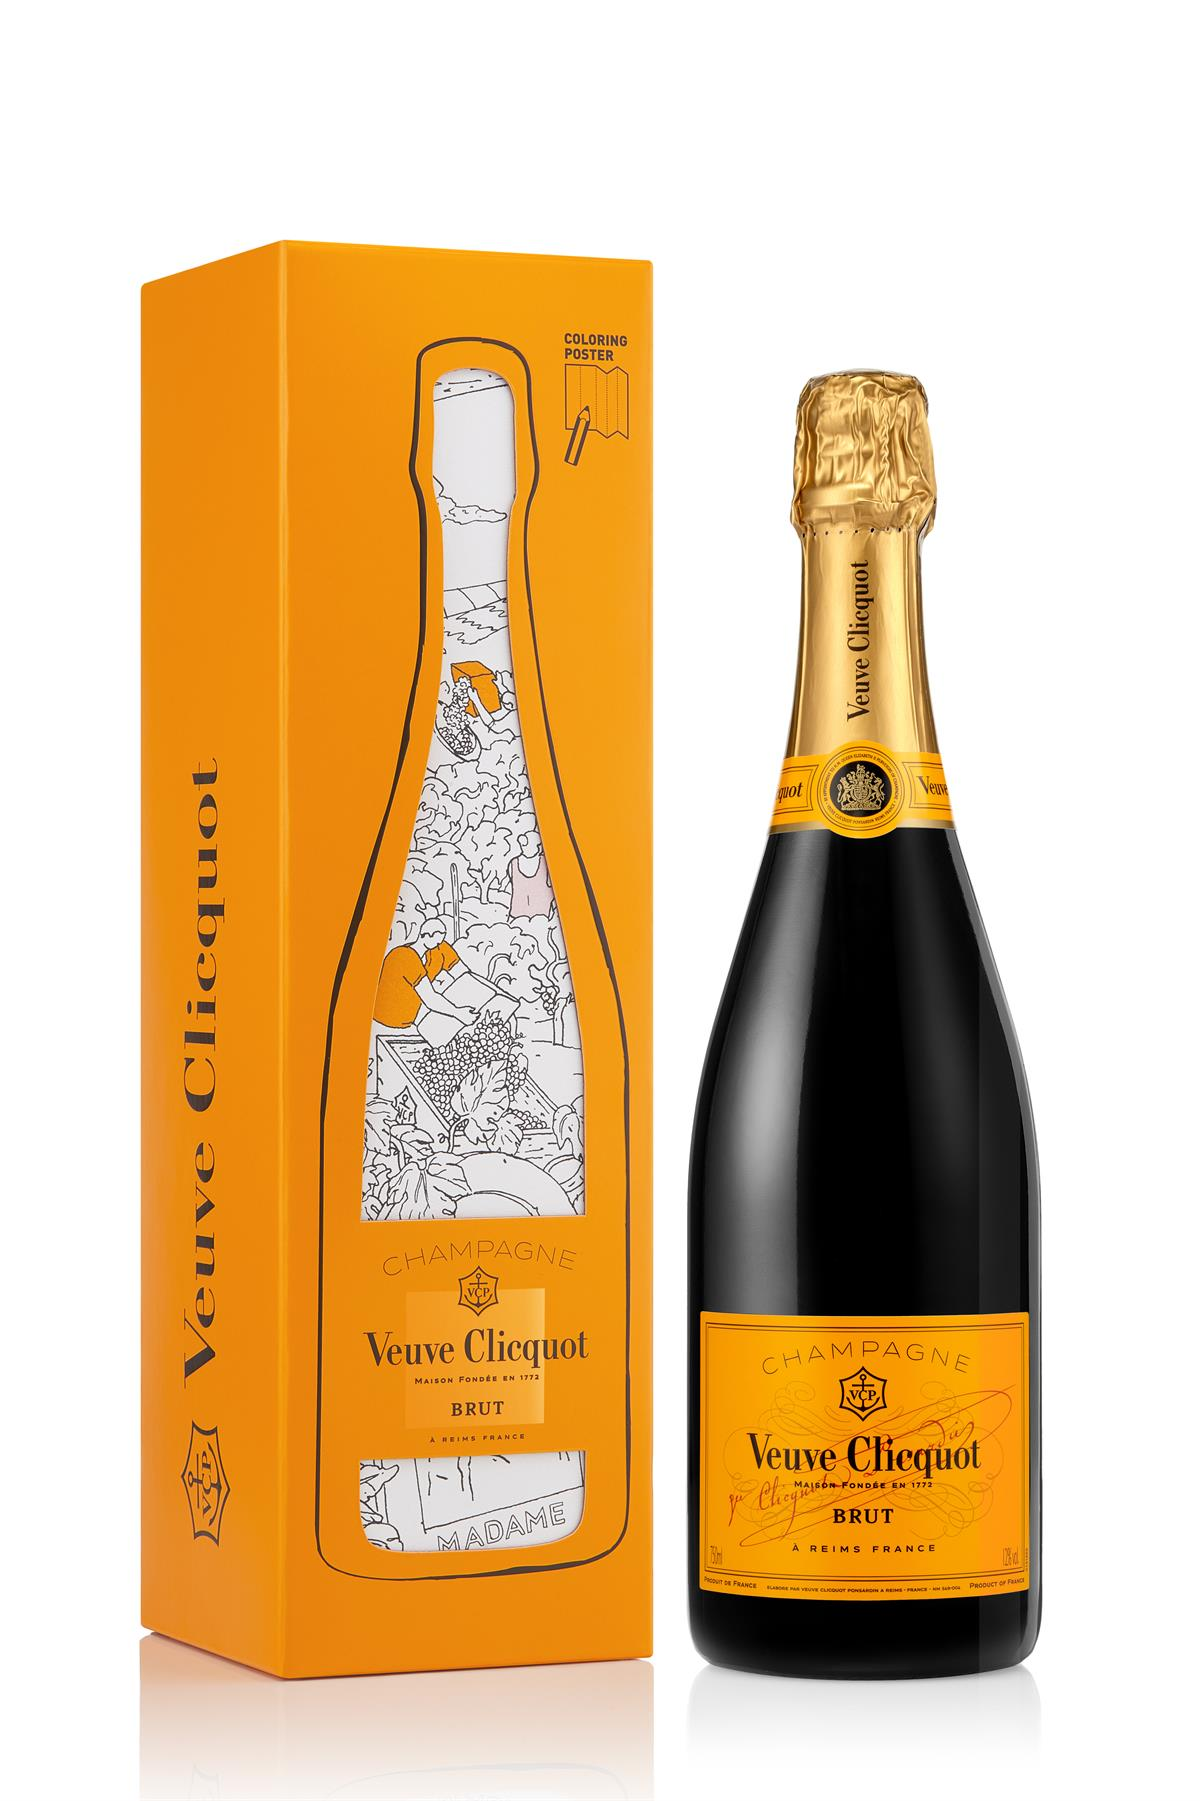 VCP-COLORAMA-YELLOW-LABEL-BRUT-NON-VINTAGE-COLORING-PACK-WITH-BOTTLE_EUR 49,95